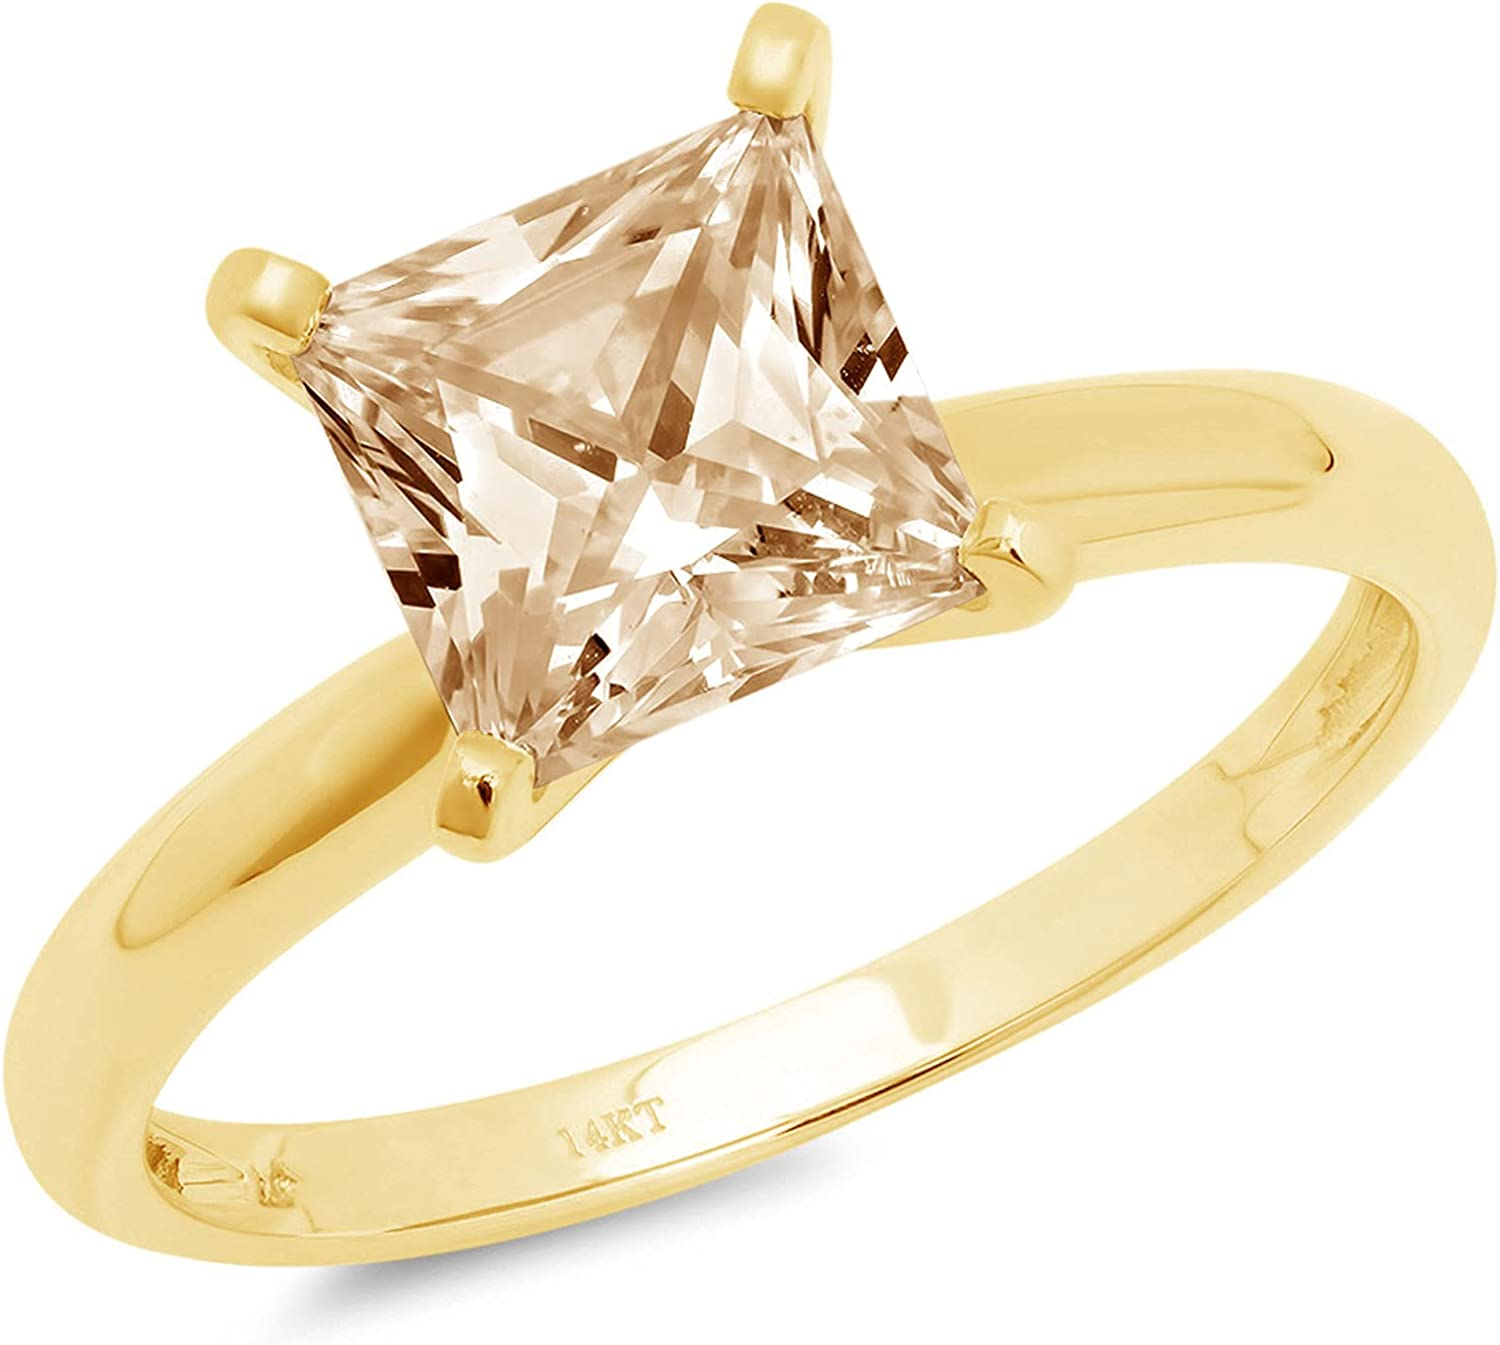 Clara Pucci 0.50 ct Brilliant Princess Cut Solitaire Natural Brown Morganite Gem 4-Prong Engagement Wedding Bridal Promise Anniversary Ring Solid 18K Yellow Gold for Women